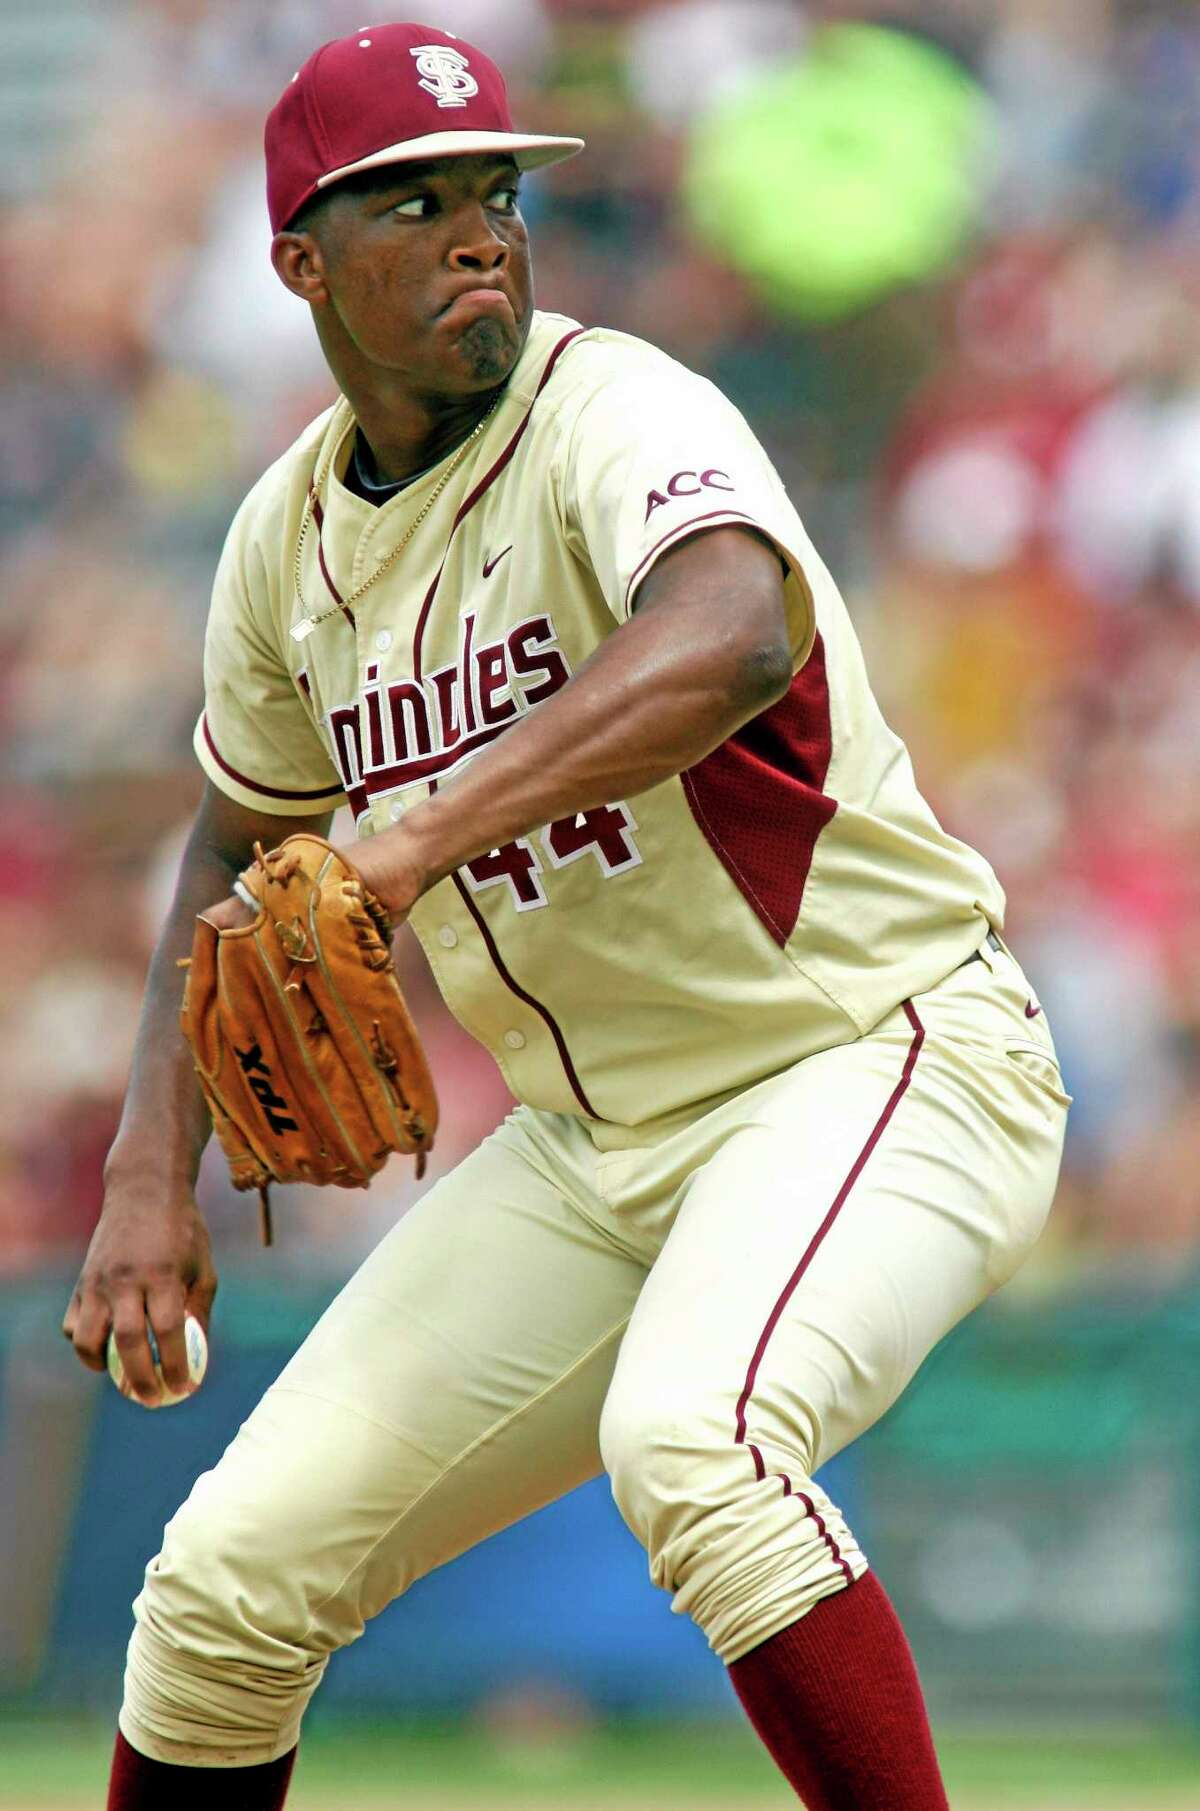 Heisman Trophy winner Jameis Winston and Florida State will face the Yankees today in a spring training game.